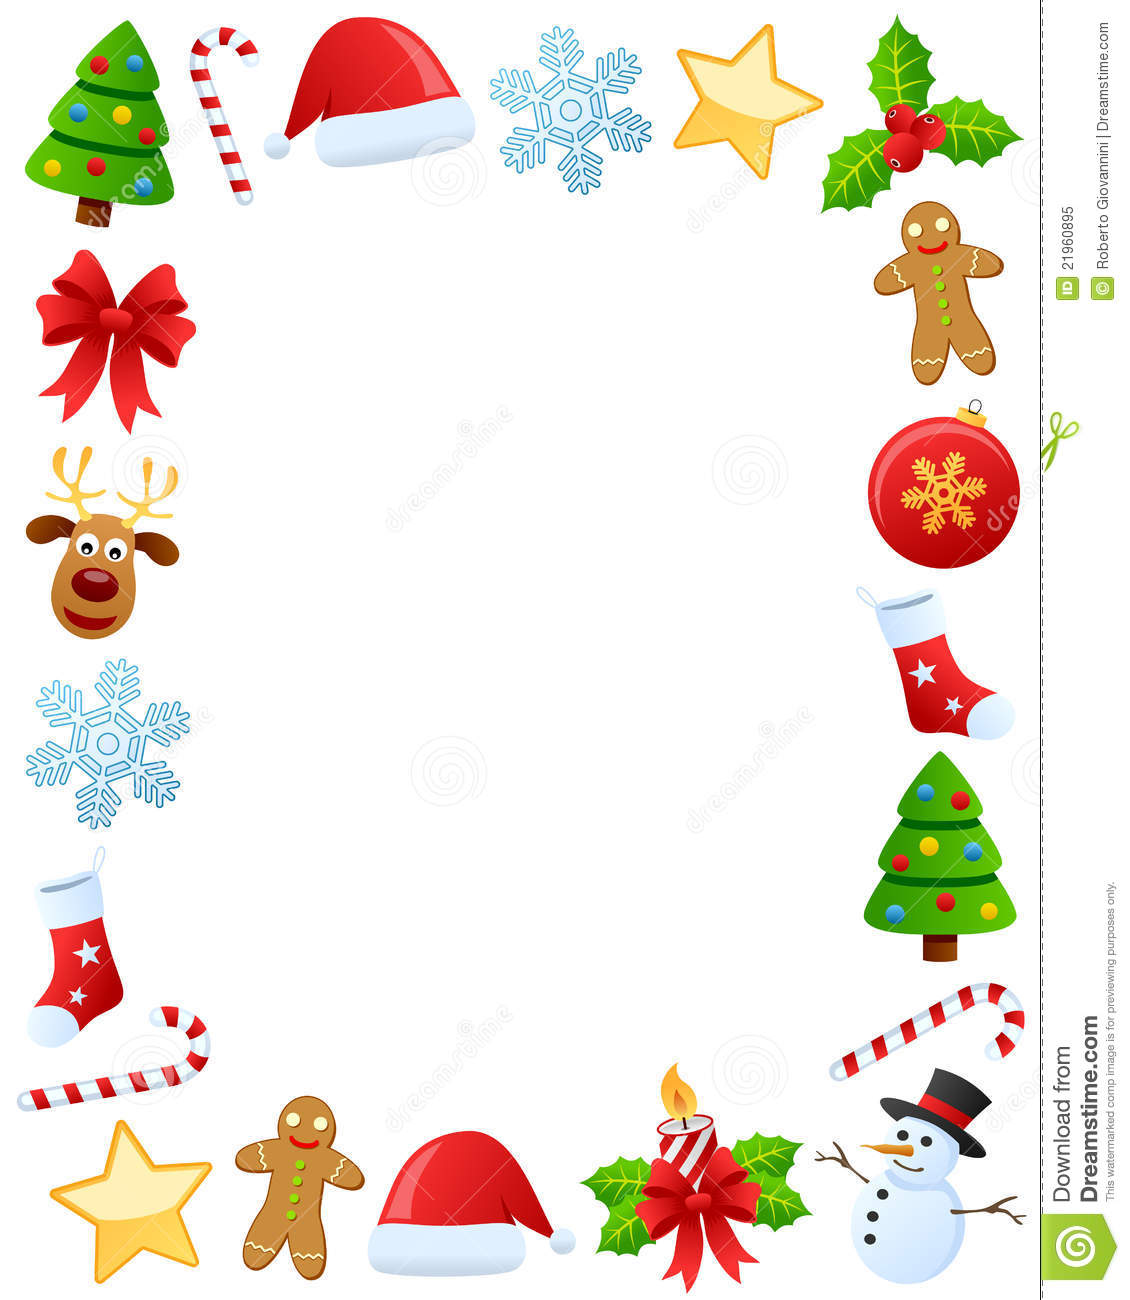 Christmas Photo Frame [1] Royalty Free Stock Photo - Image: 21960895